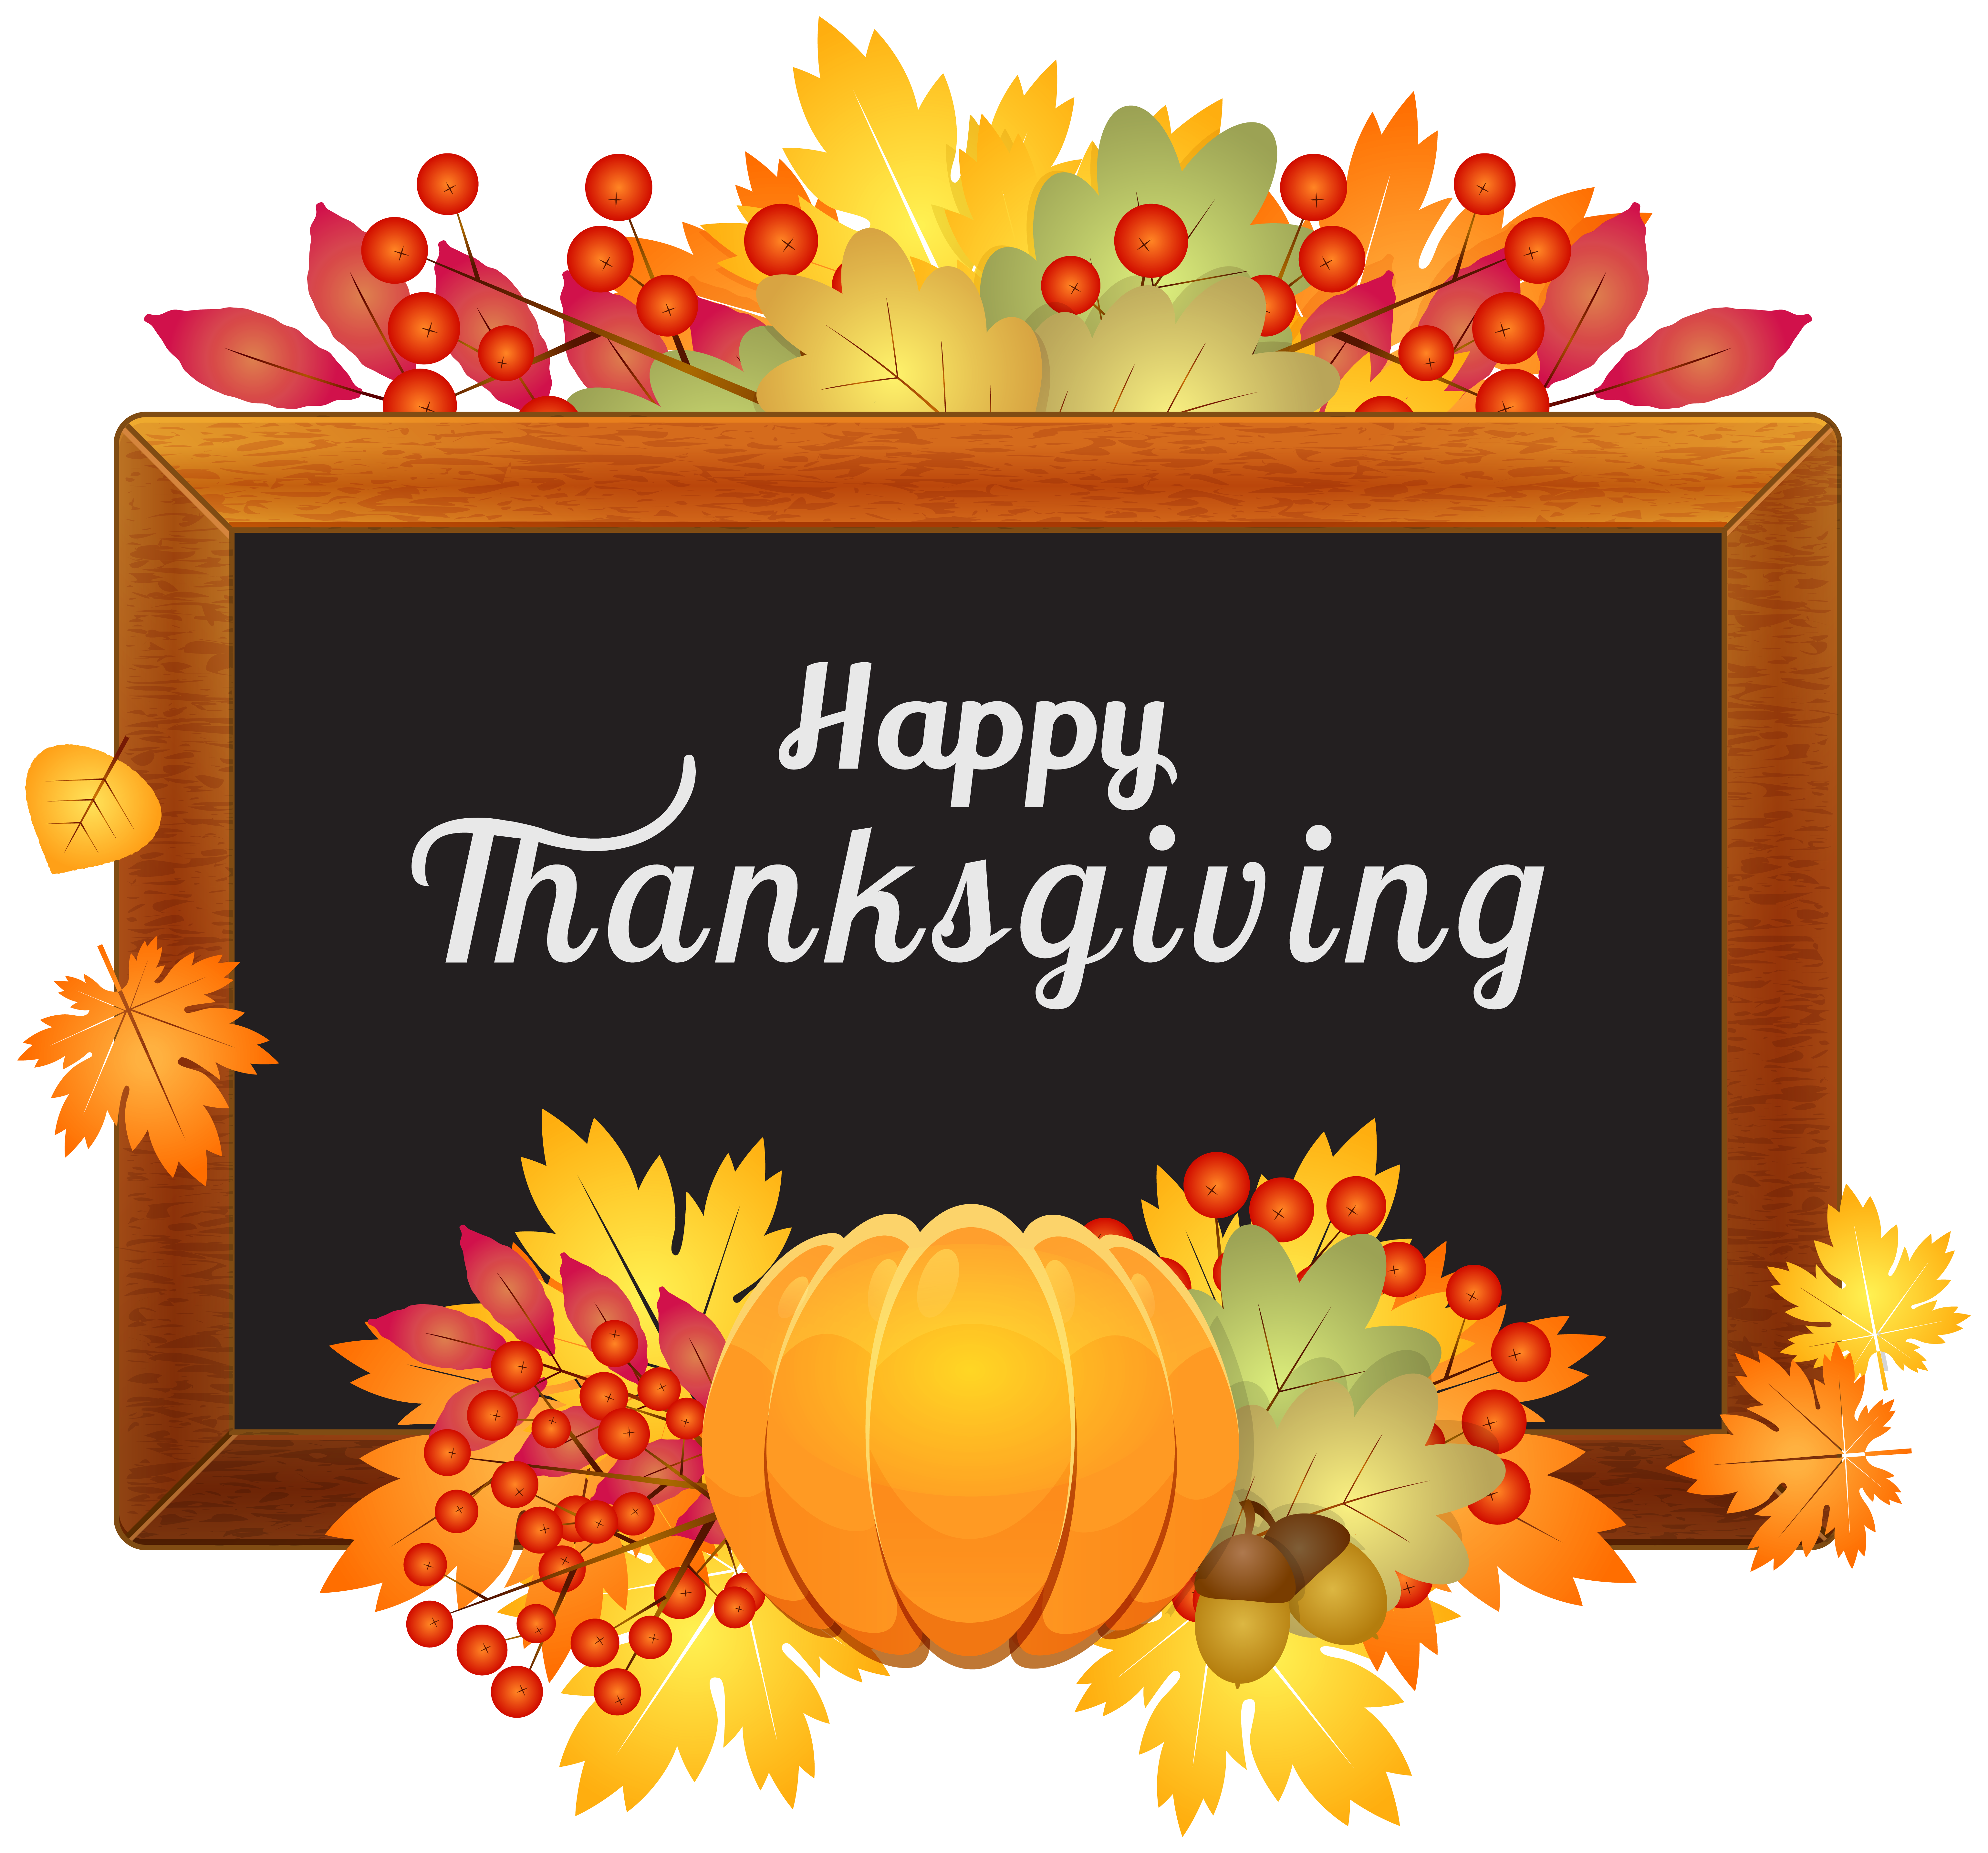 Happy thanksgiving banner png. Decor clipart image gallery